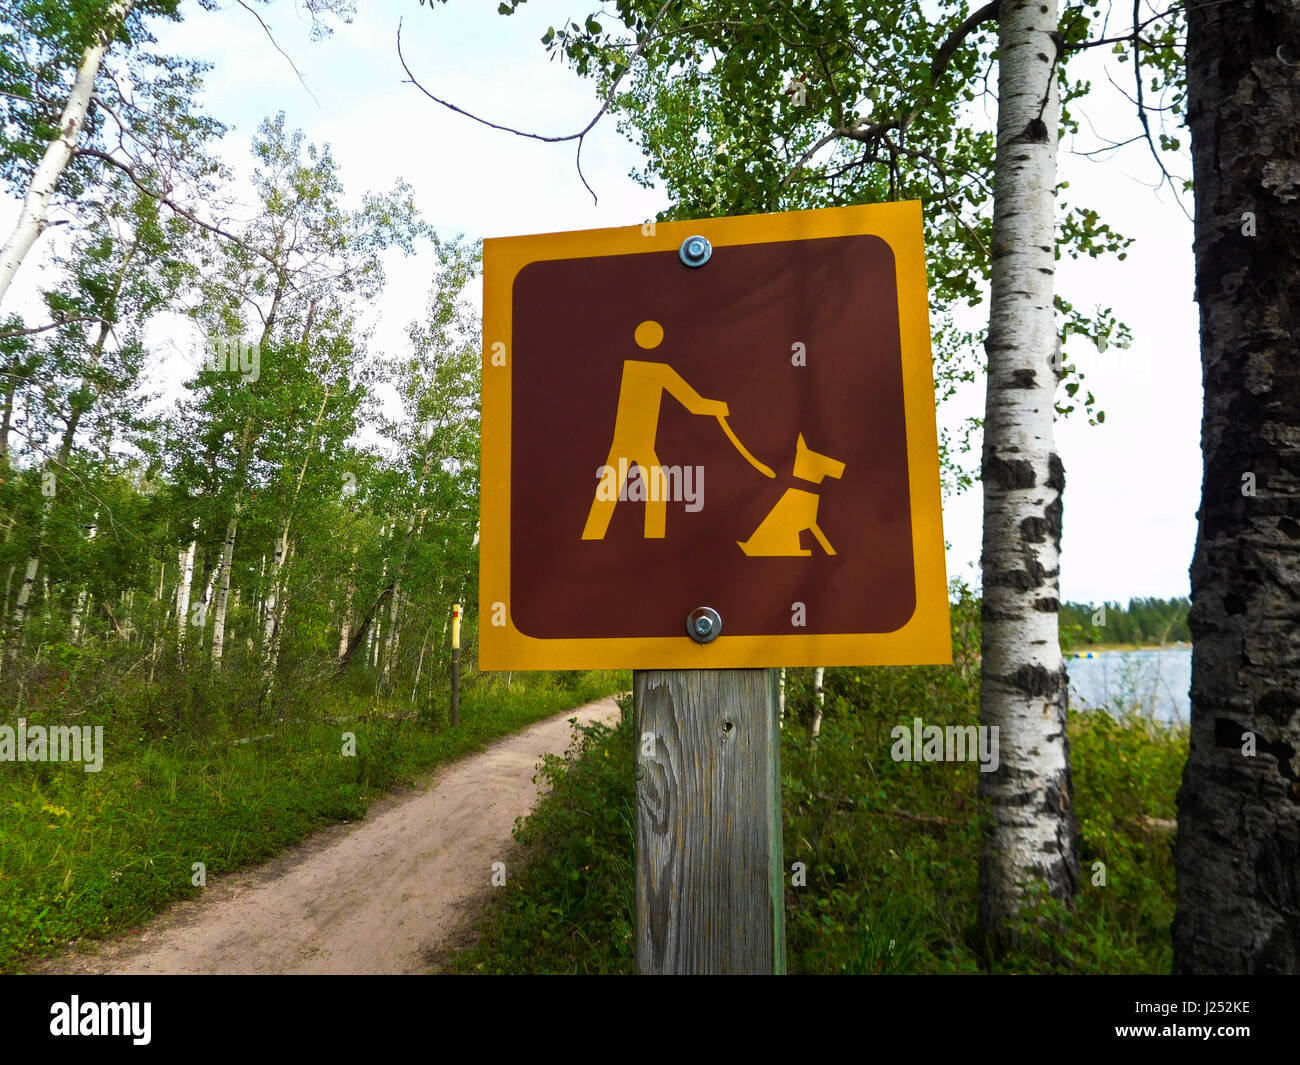 Dogs Must Be Kept on Leash On a Hiking Trail. - Stock Image